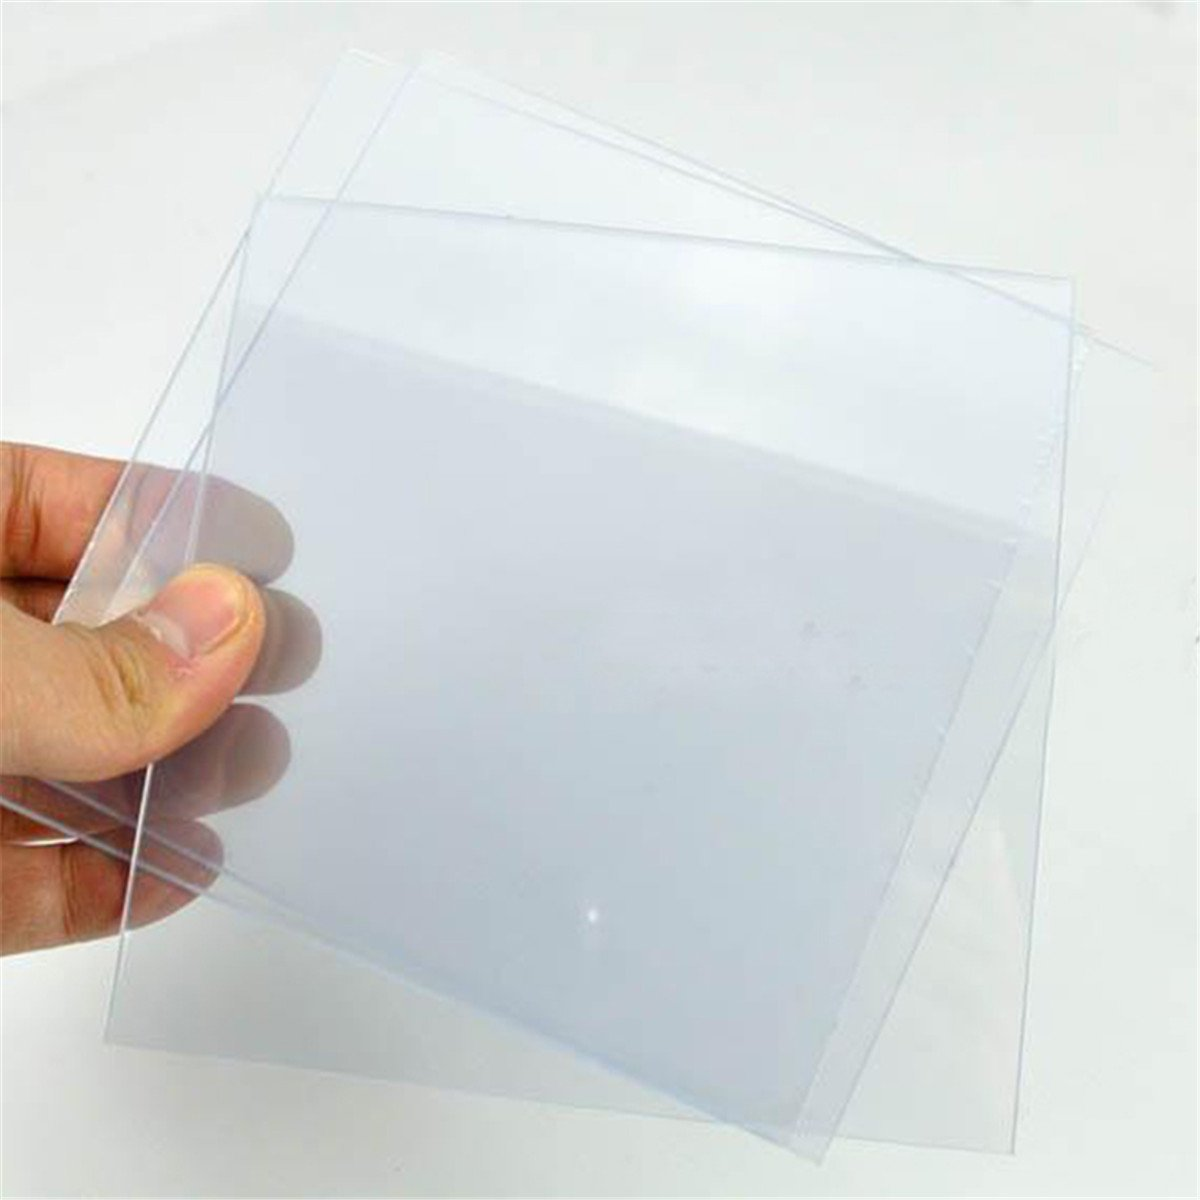 PETG Thermoform Plastic Sheets 1//32 x 18 x 18 Sheets 6 Piece Bundle